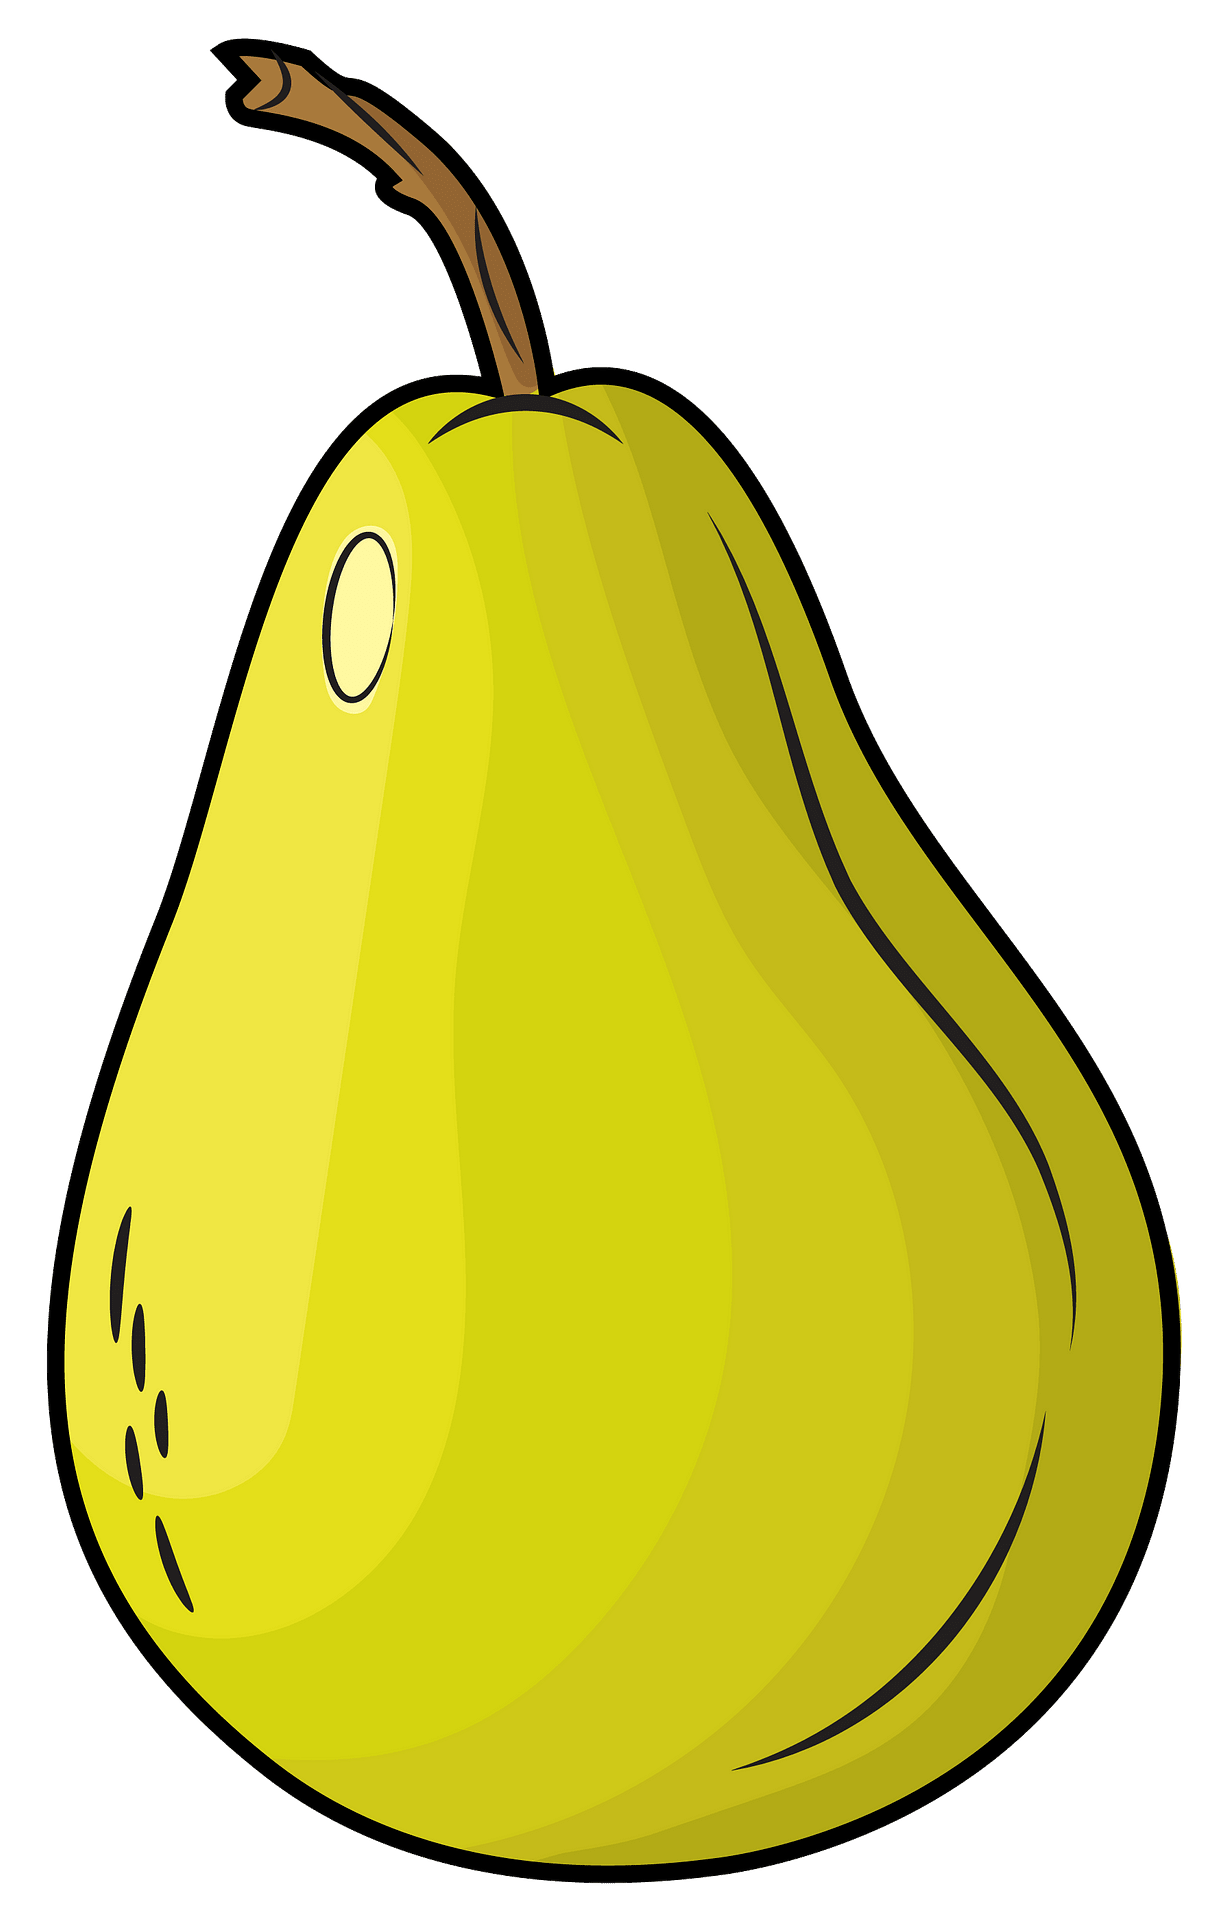 Pear clipart. Free download..